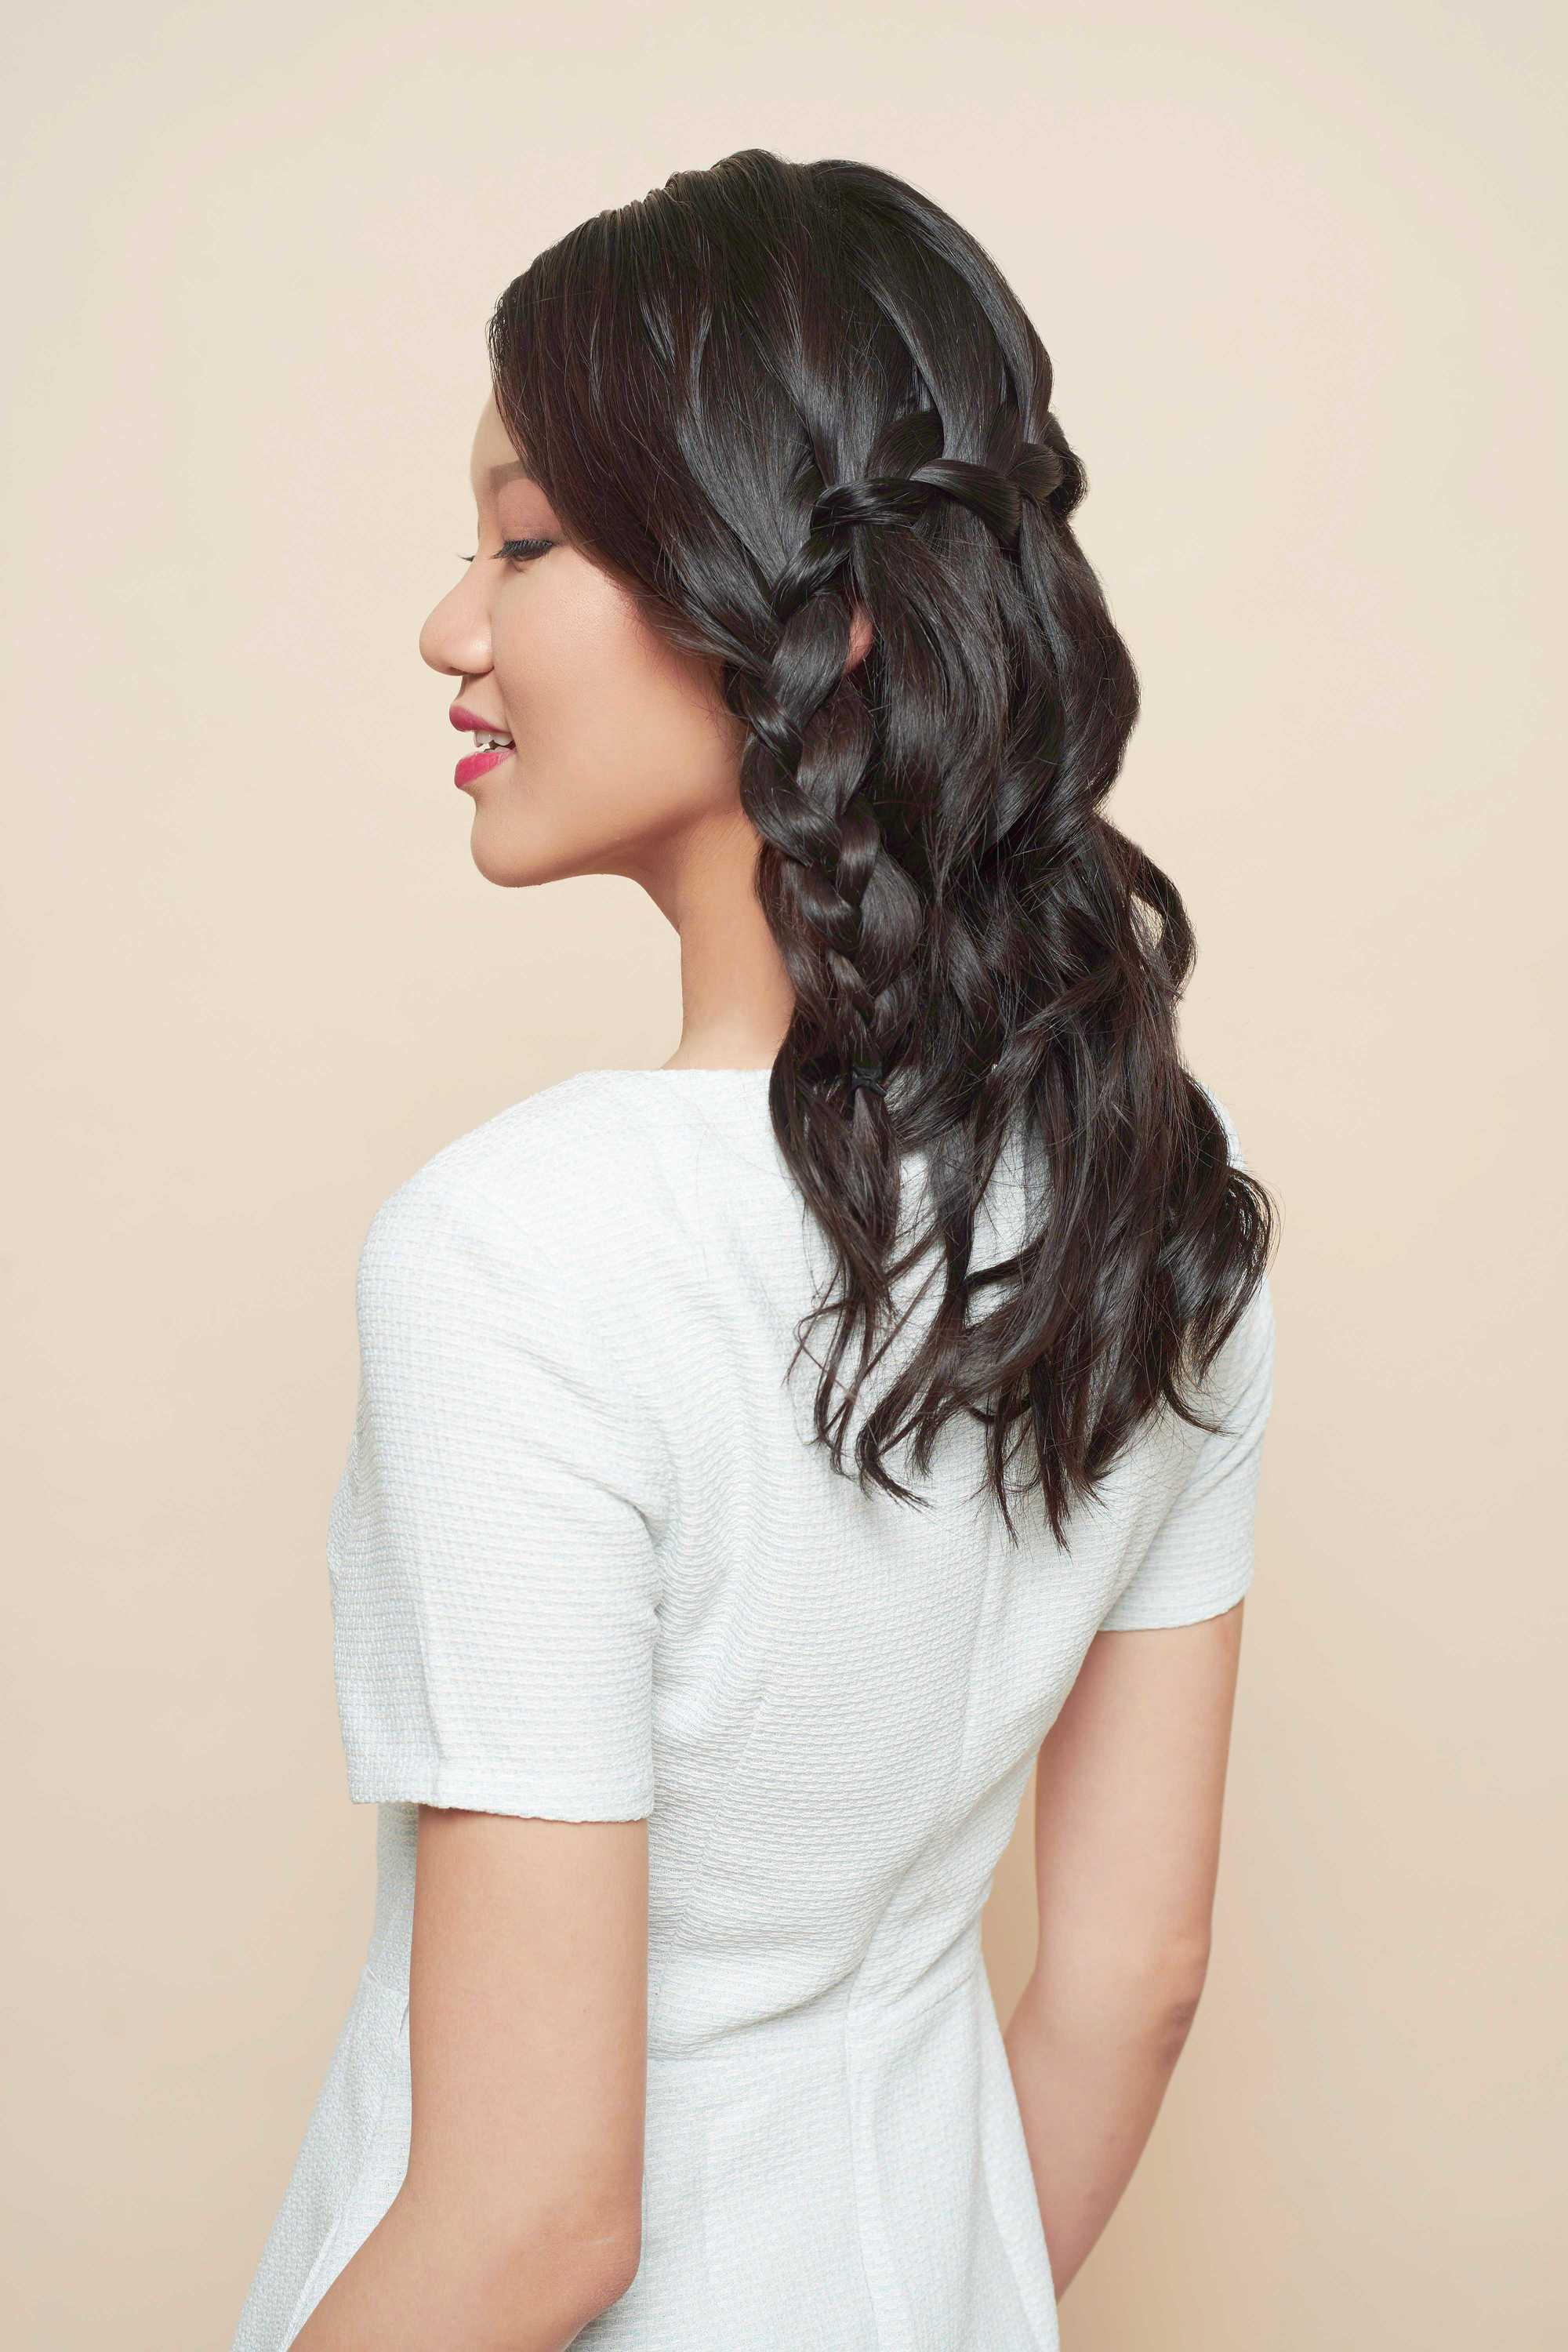 down prom hairstyles: close up shot of a model with dark brown hair styled into a waterfall braid, wearing white dress and posing in a studio